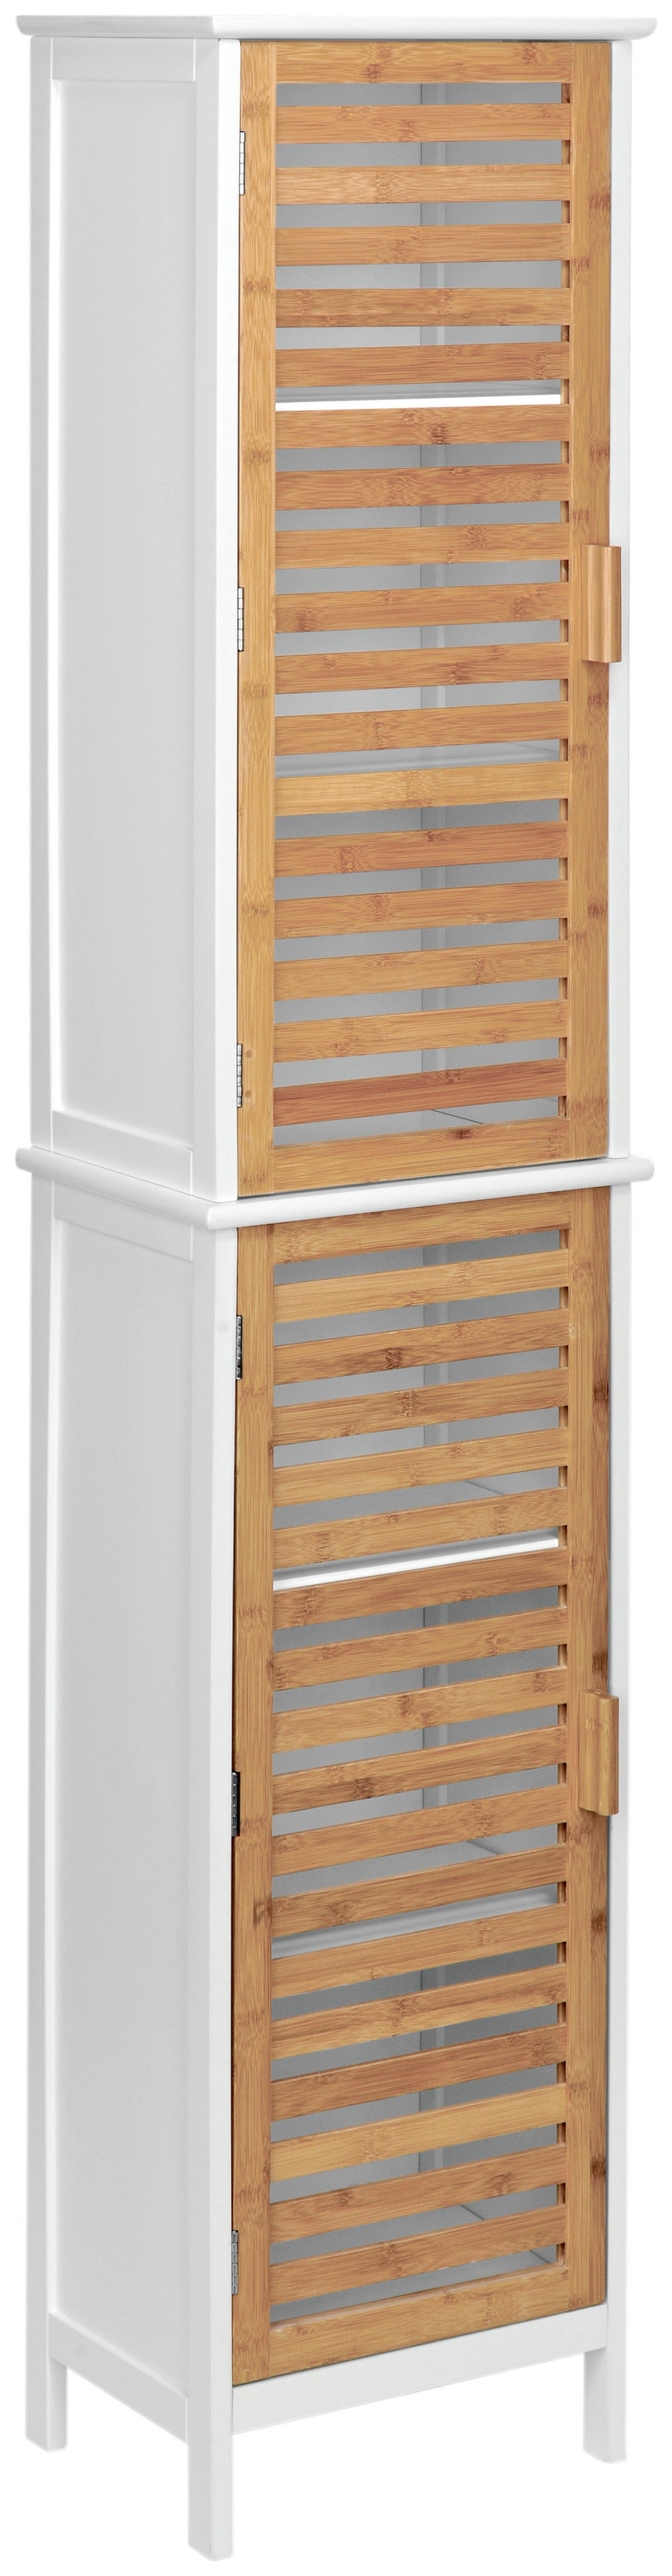 Premier Housewares 2 Door Floorstanding Bamboo Cabinet. at Argos from Premier housewares